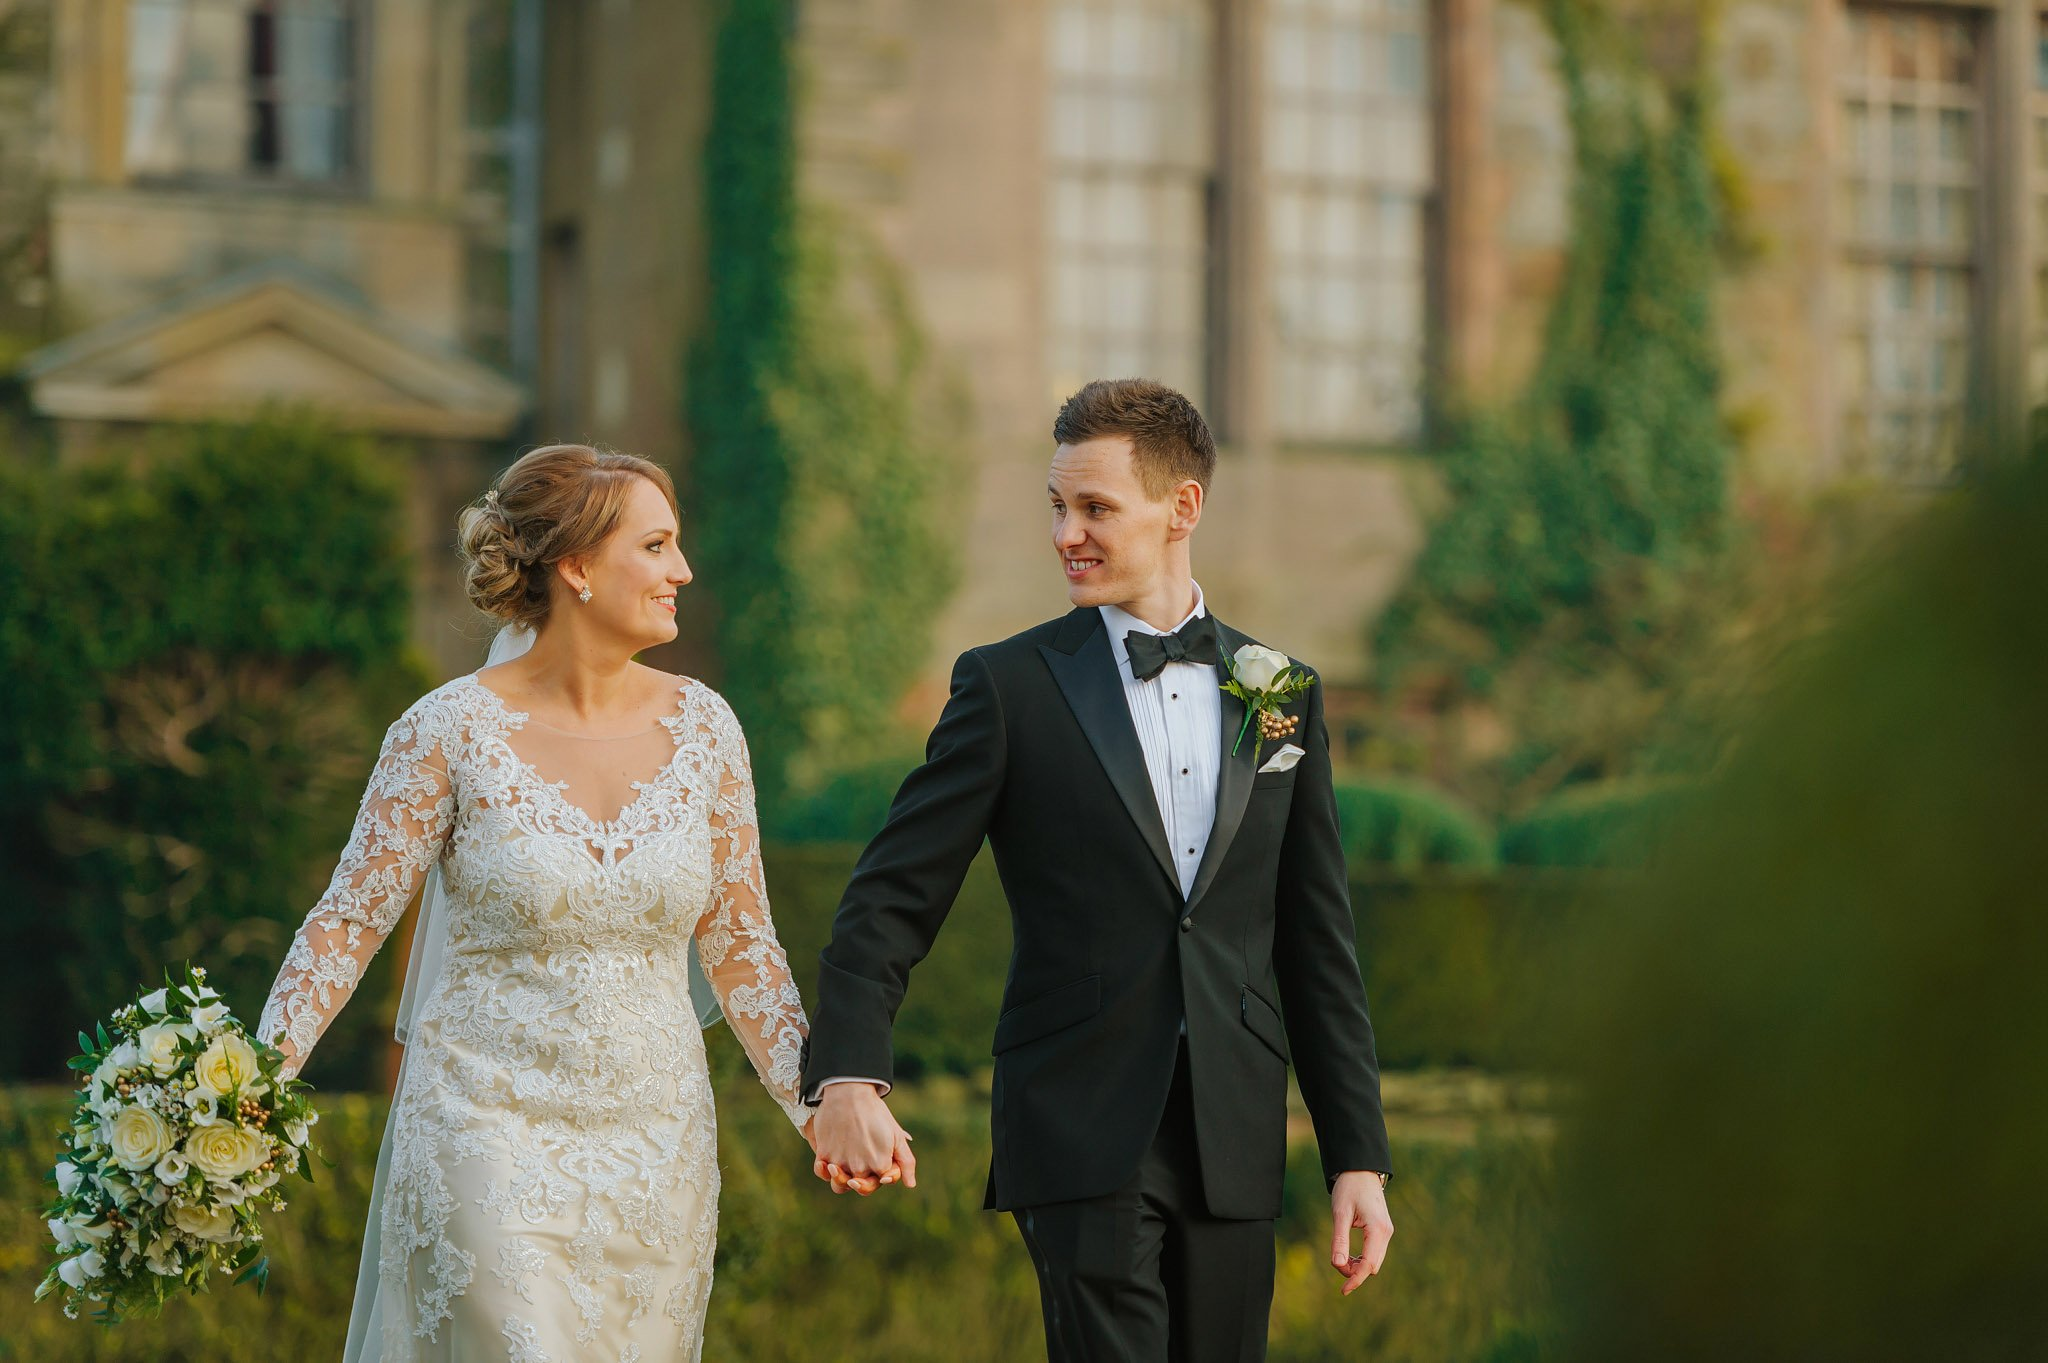 Coombe Abbey wedding in Coventry, Warwickshire - Sam + Matt 43